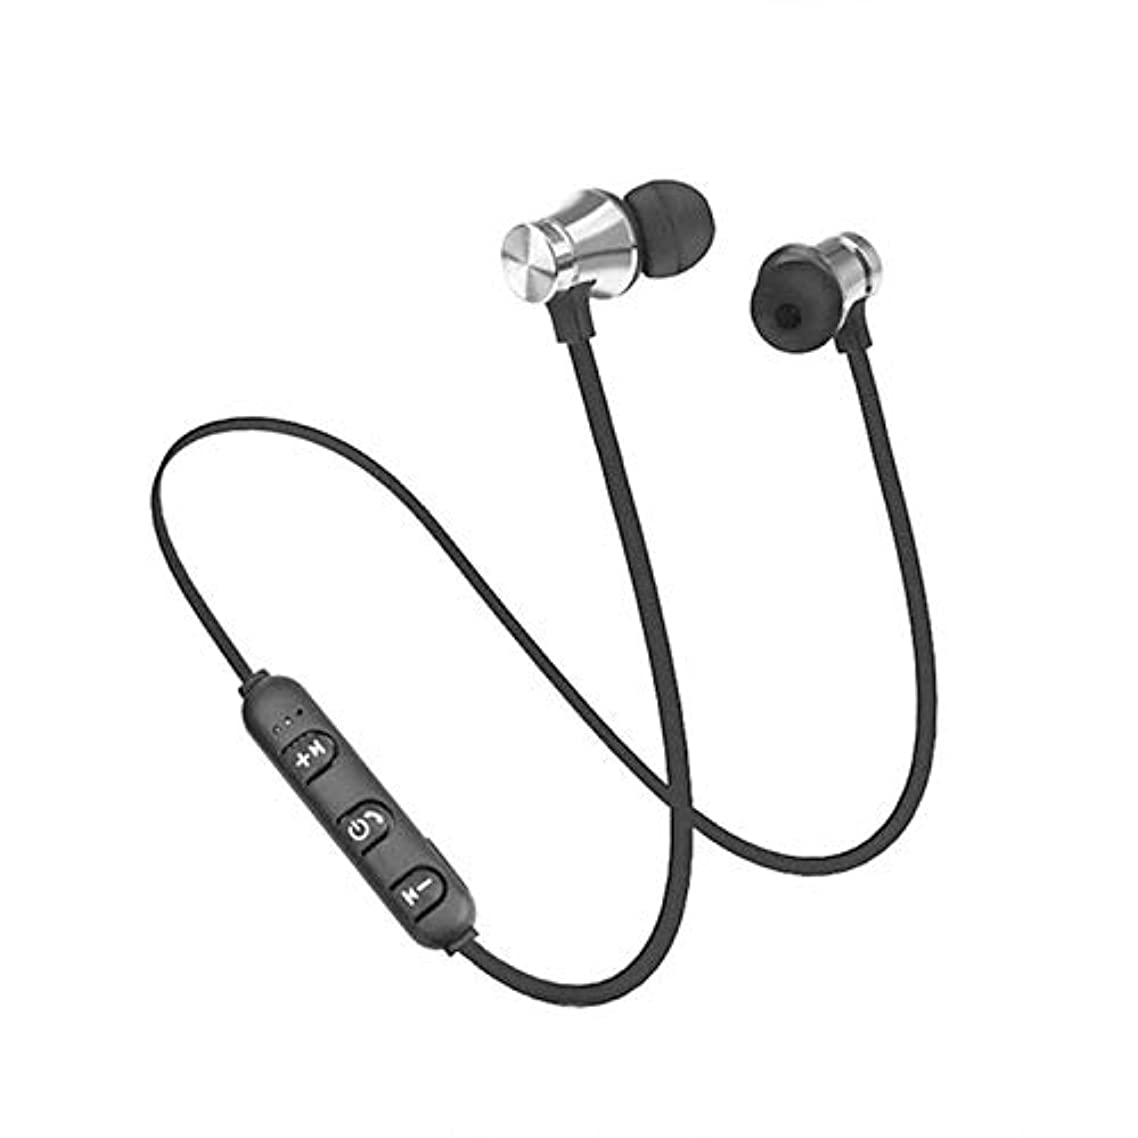 XT11 Magnetic 4.2 in-Ear Headset Hands-Free Noise Reduction Sports Running Wired Earphone Headphone